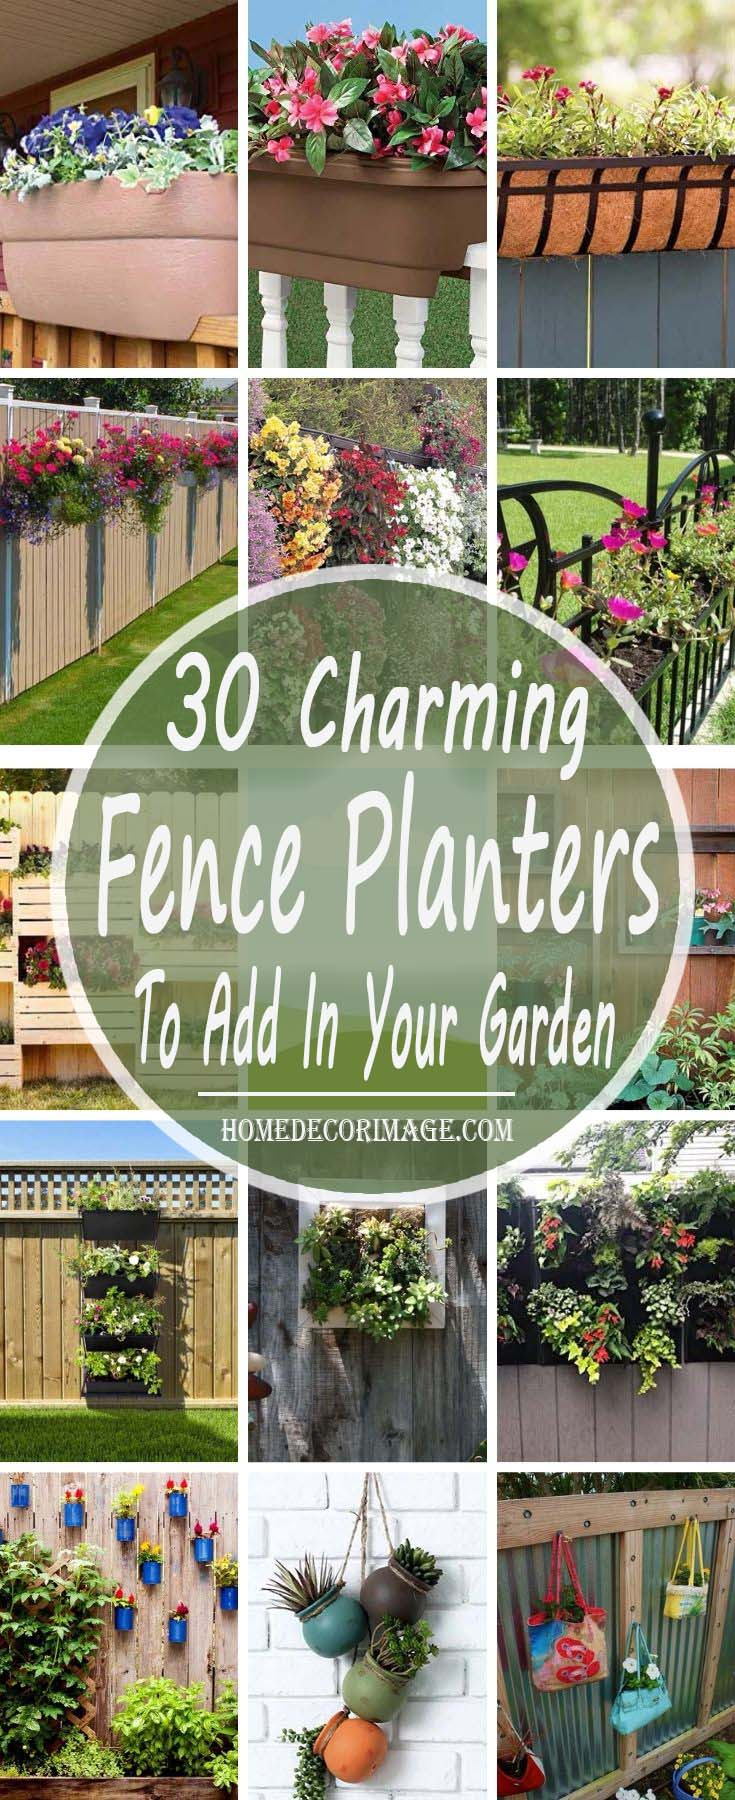 30 Charming Fence Planters To Add More Natural Beauty To Your Garden #fenceplanters #homedecorimage